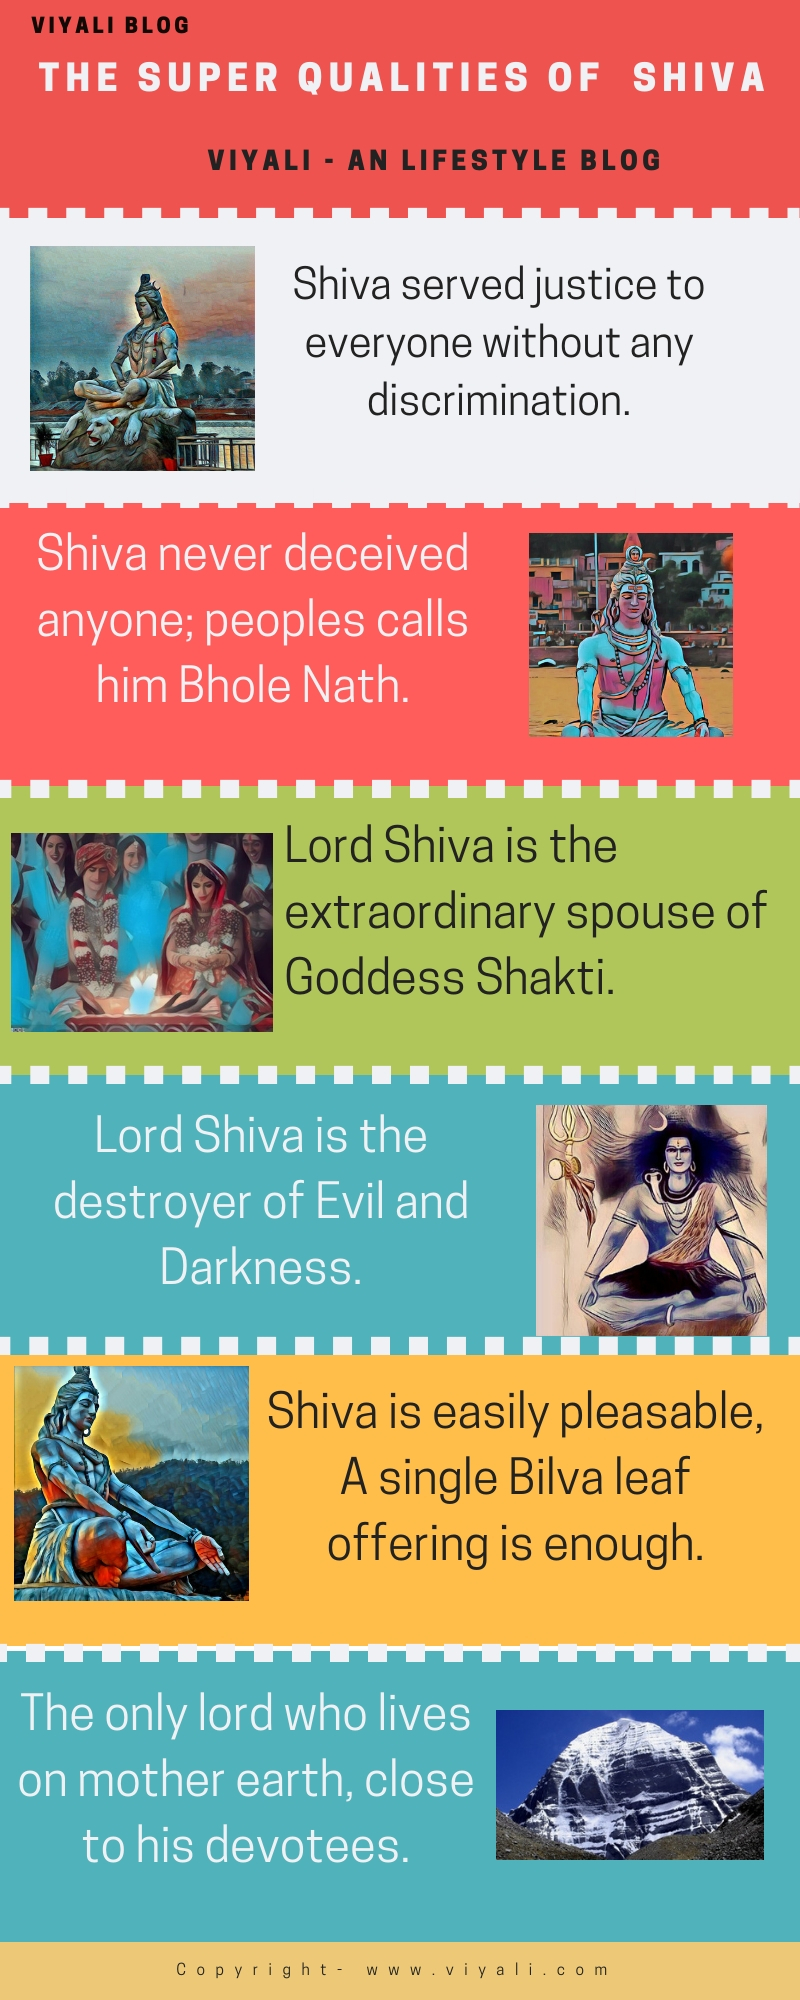 11 Qualities of Shiva which makes him super Lord